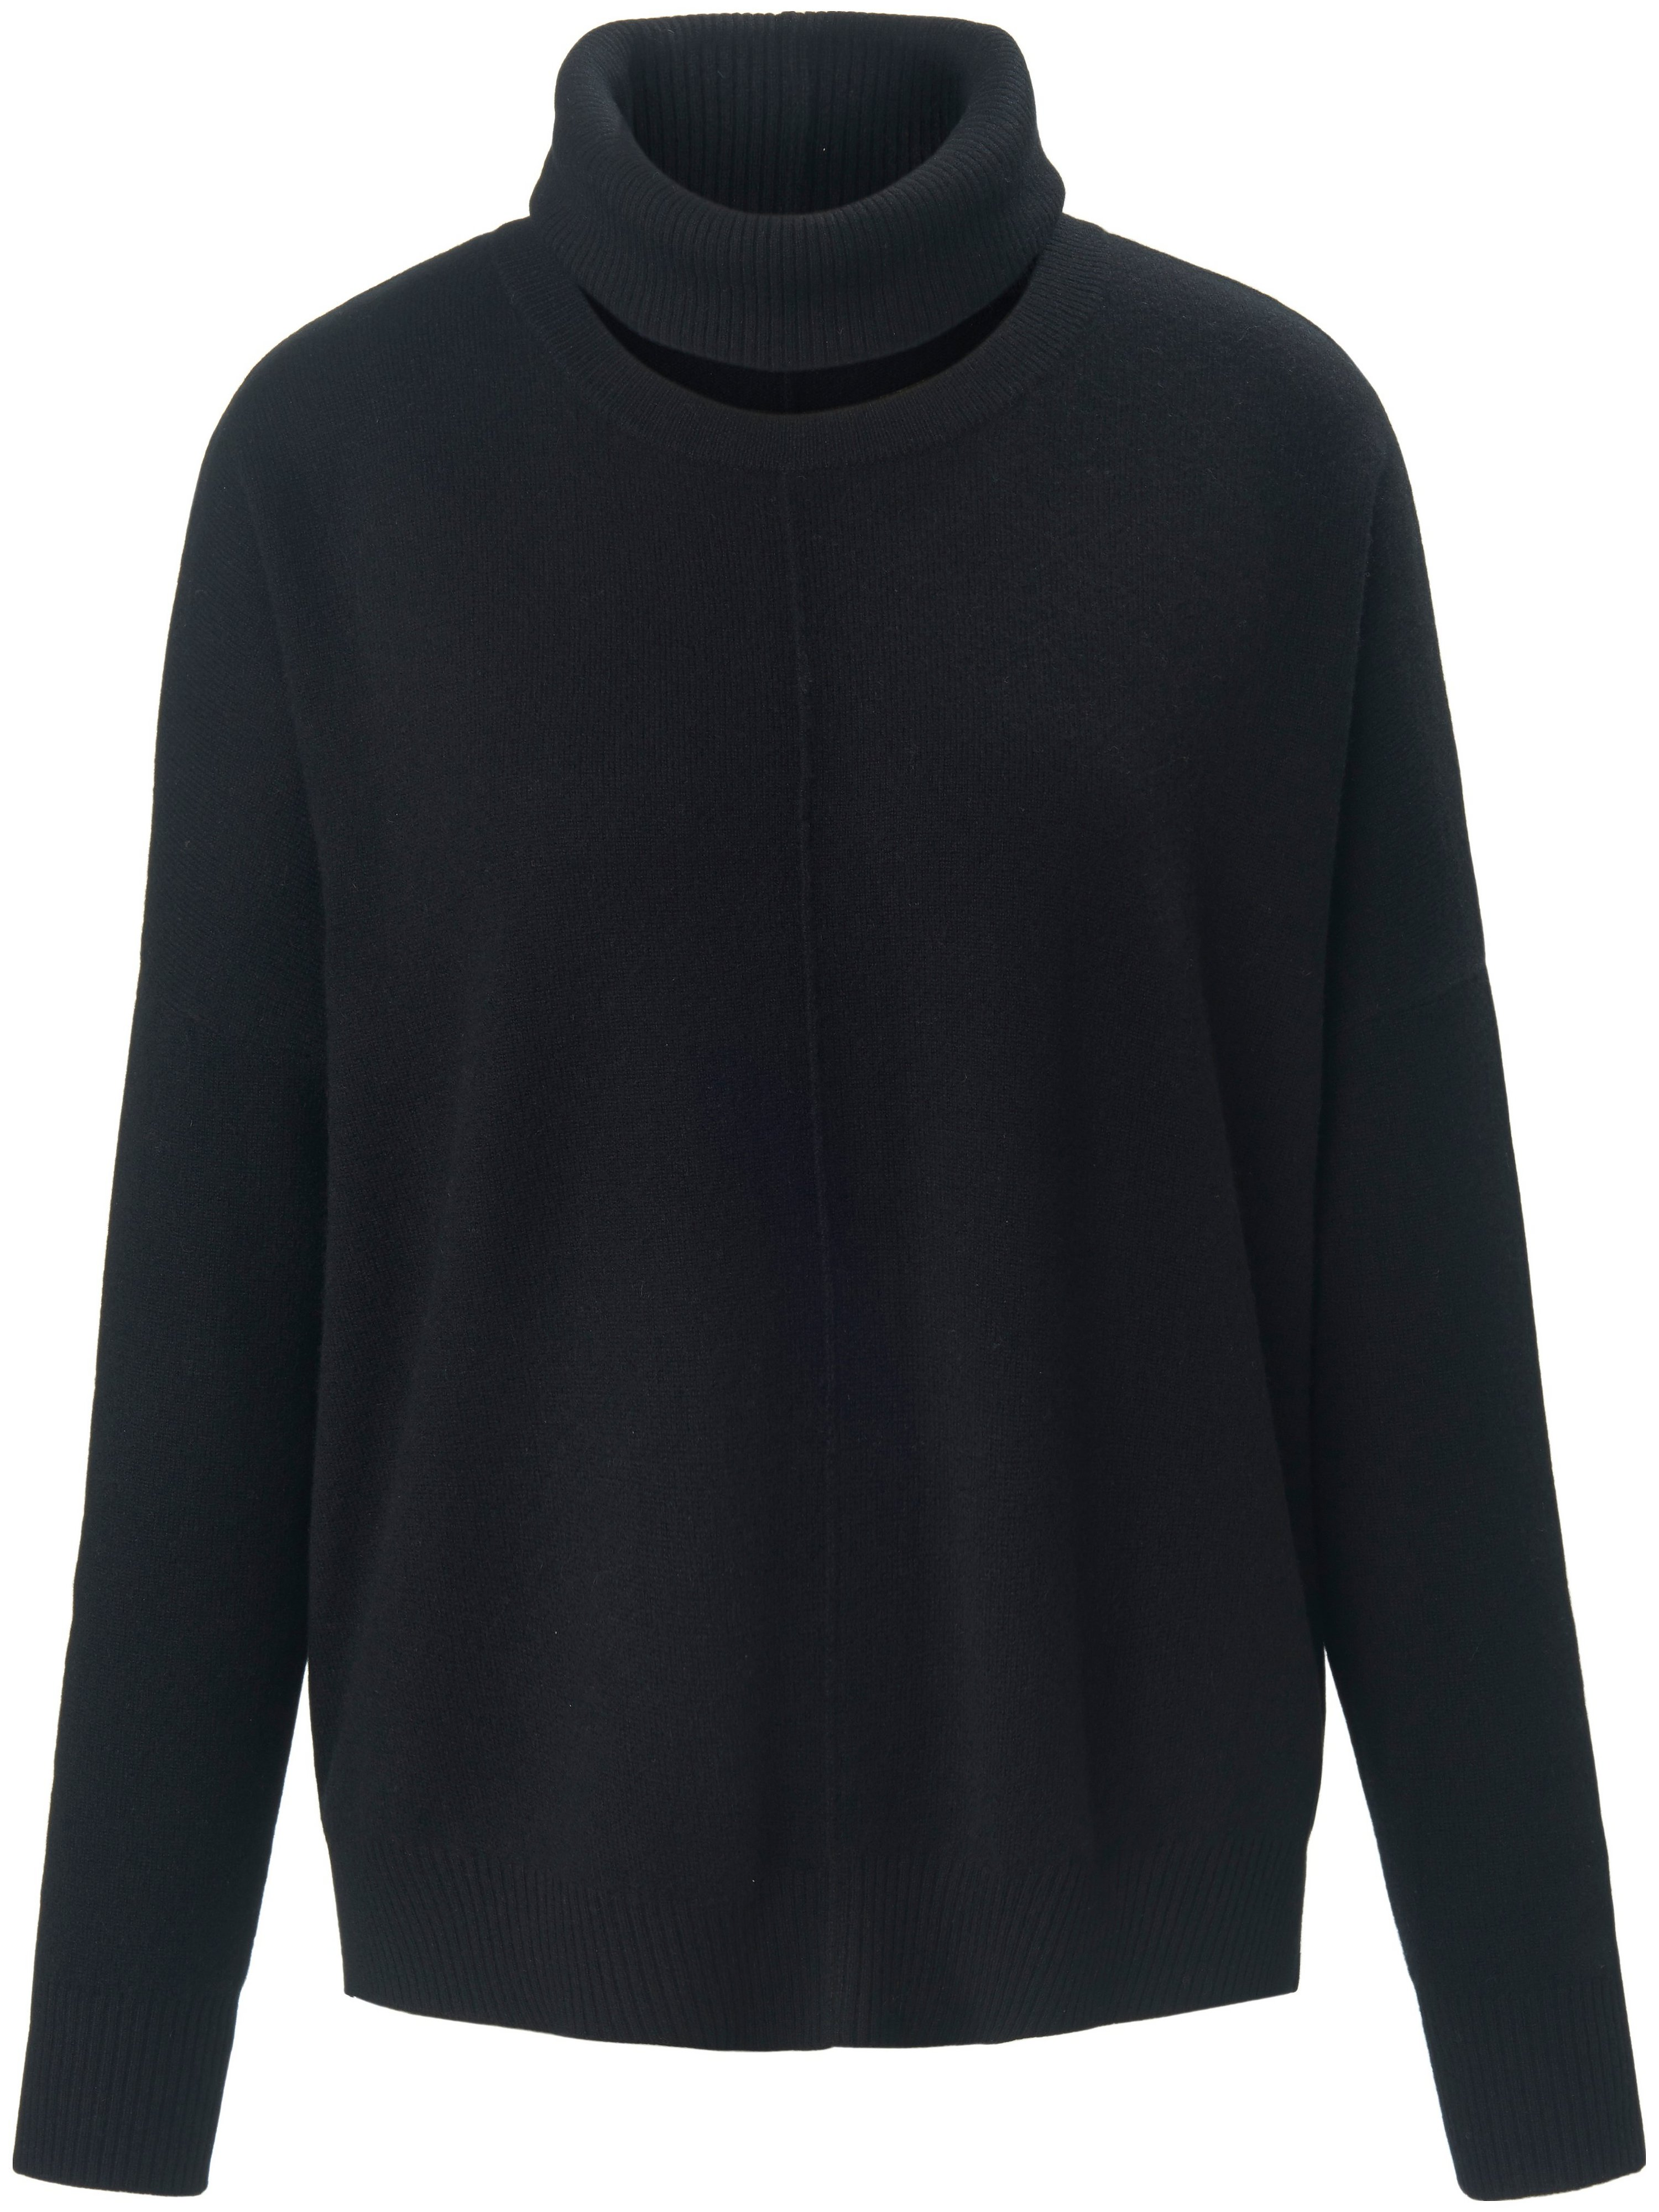 Le pull 100% cachemire  include noir taille 40